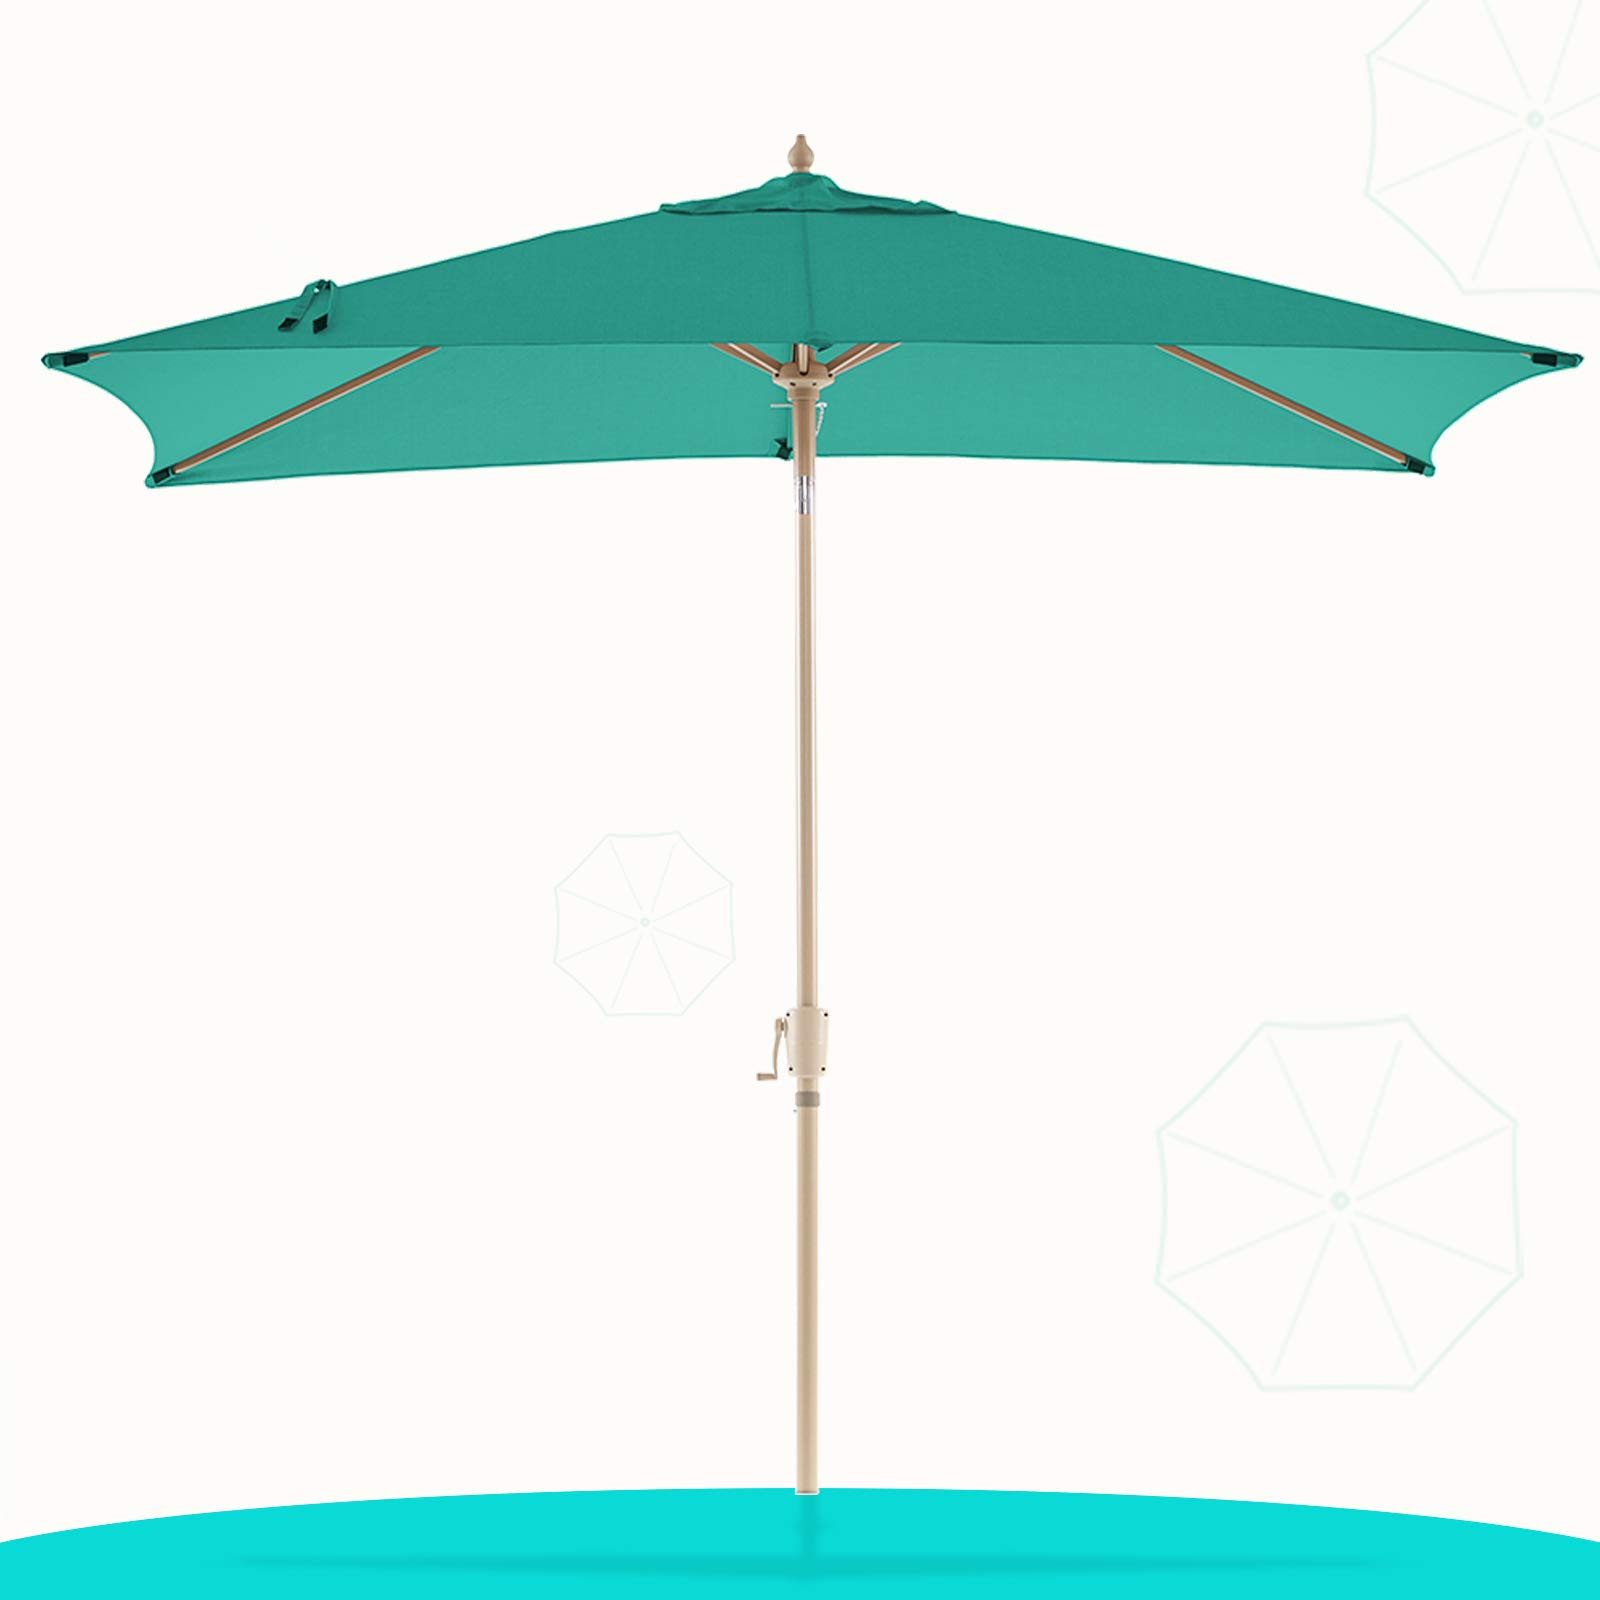 LE CONTE Olefin Rectangular Patio Umbrella Outdoor Market Umbrellas Table Umbrellas | 3 Years Non-Fading Fabric & Push Button Tilt | Best for Deck, Garden, Lawn & Pool (6.69.8 ft, Arcadia Green)